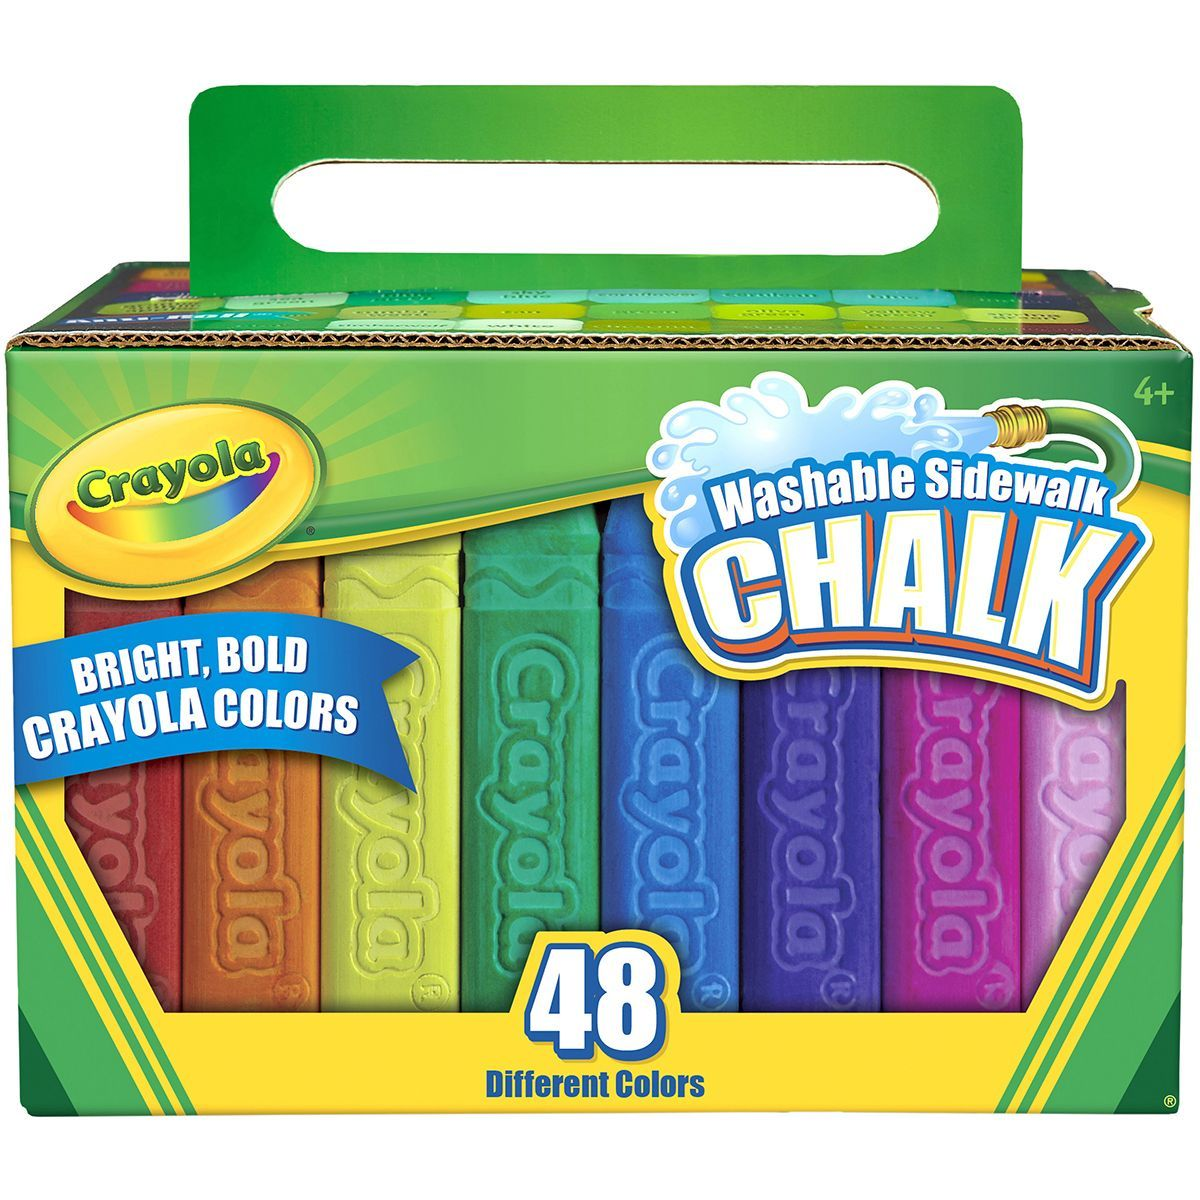 CRAYOLA-Sidewalk Chalk. The only sidewalk chalk in bright bold ...